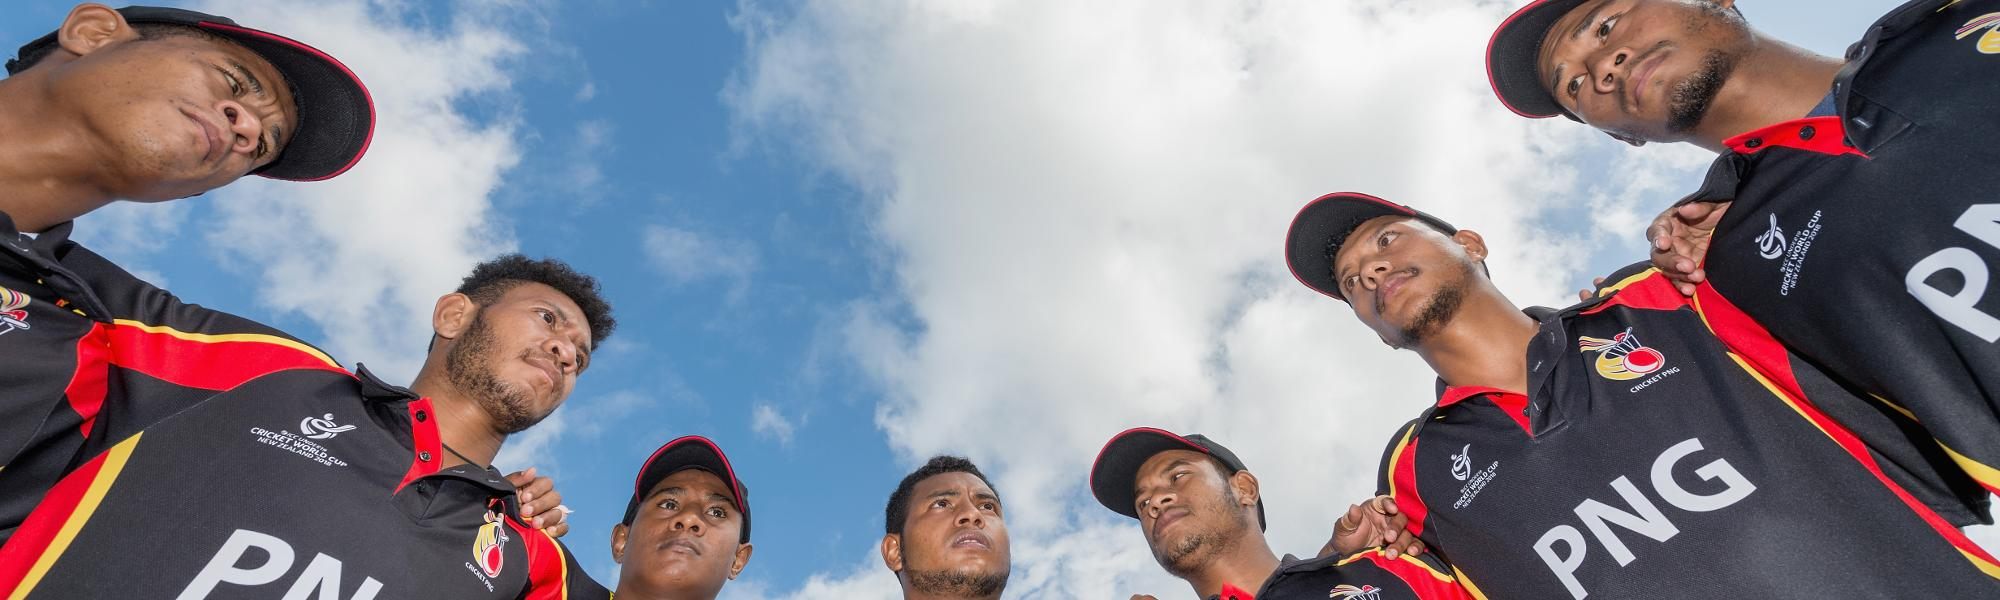 Papua New Guinea's side at the U19 World Cup